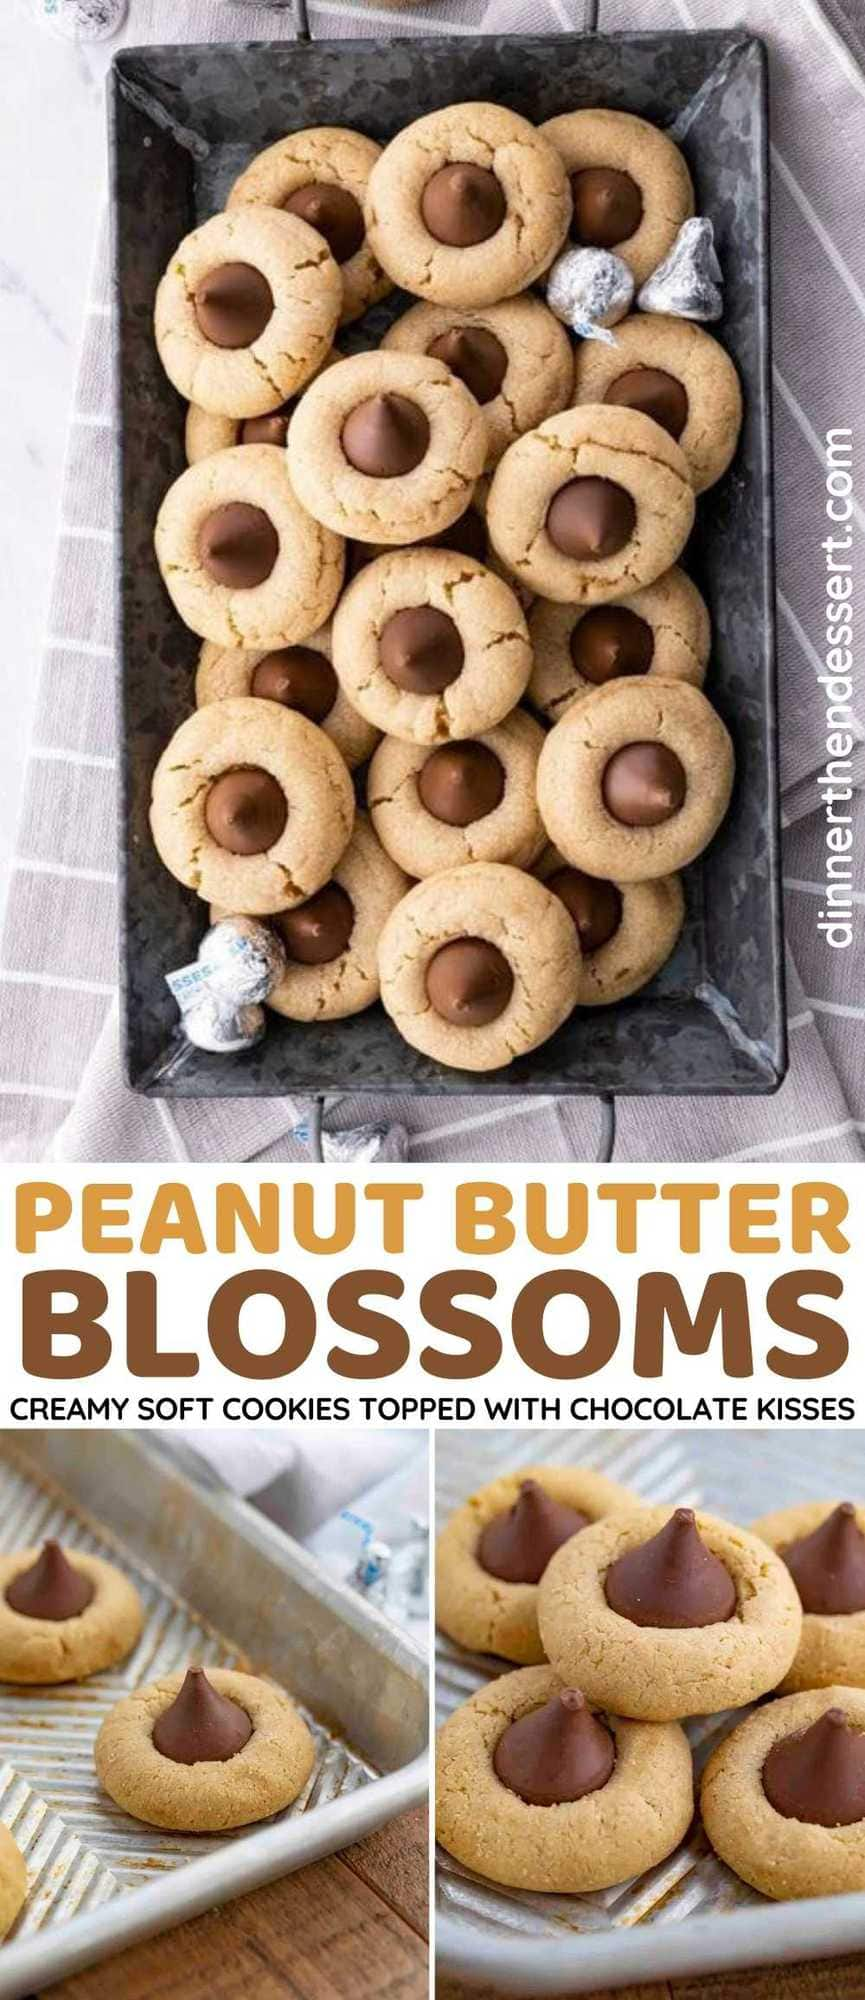 Peanut Butter Blossoms Collage